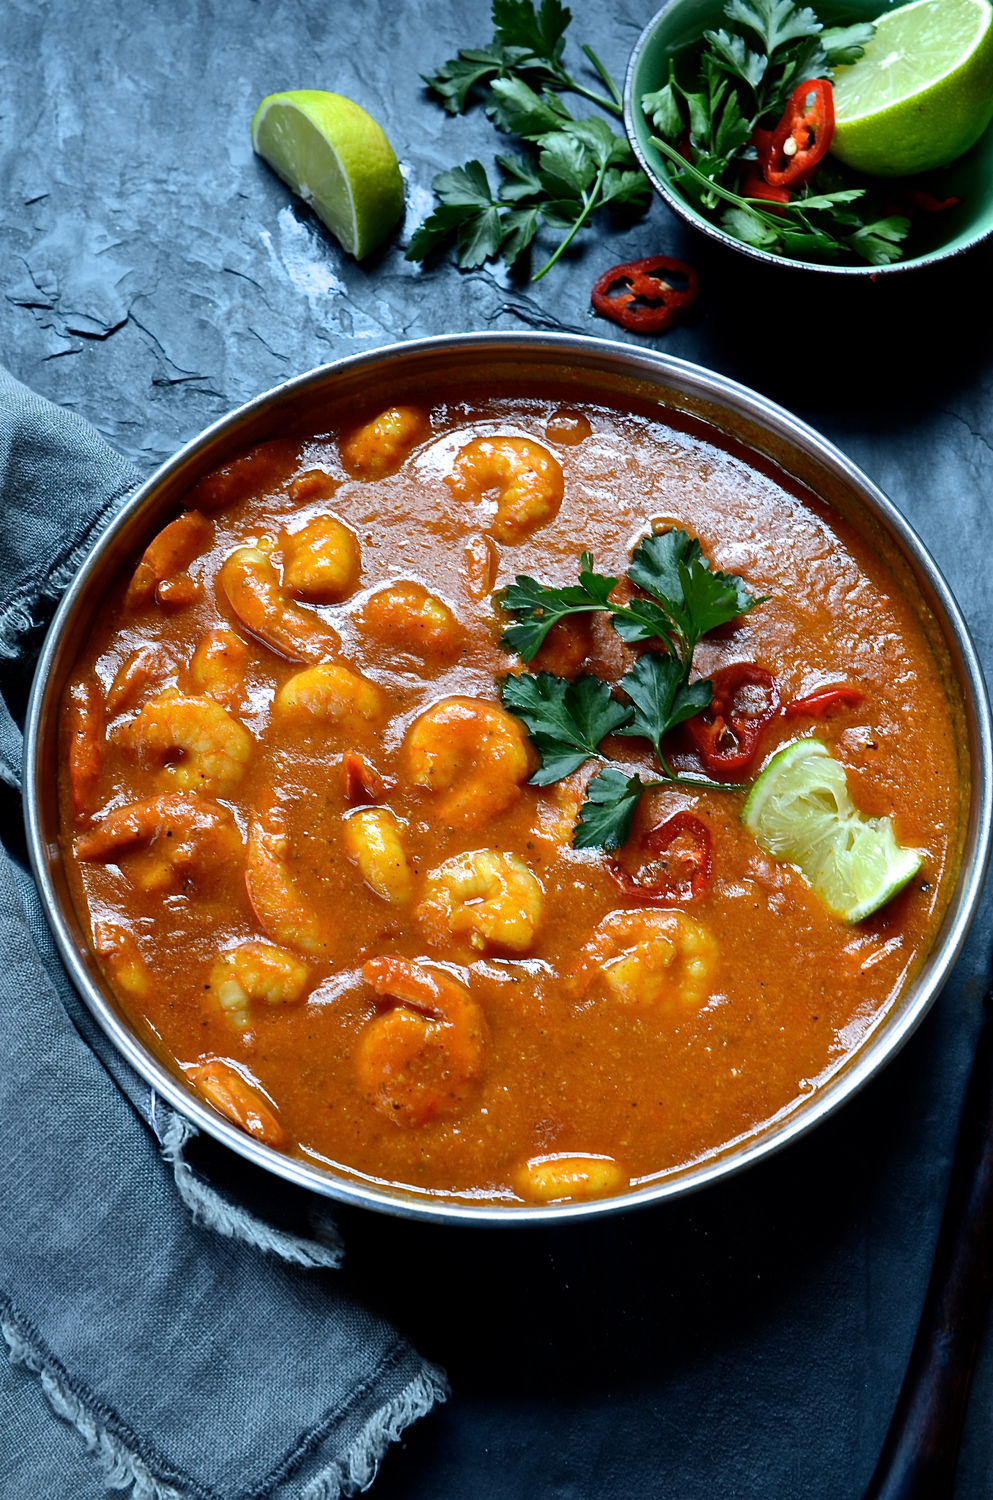 Seven delicious curry recipes | Bibbyskitchen recipes